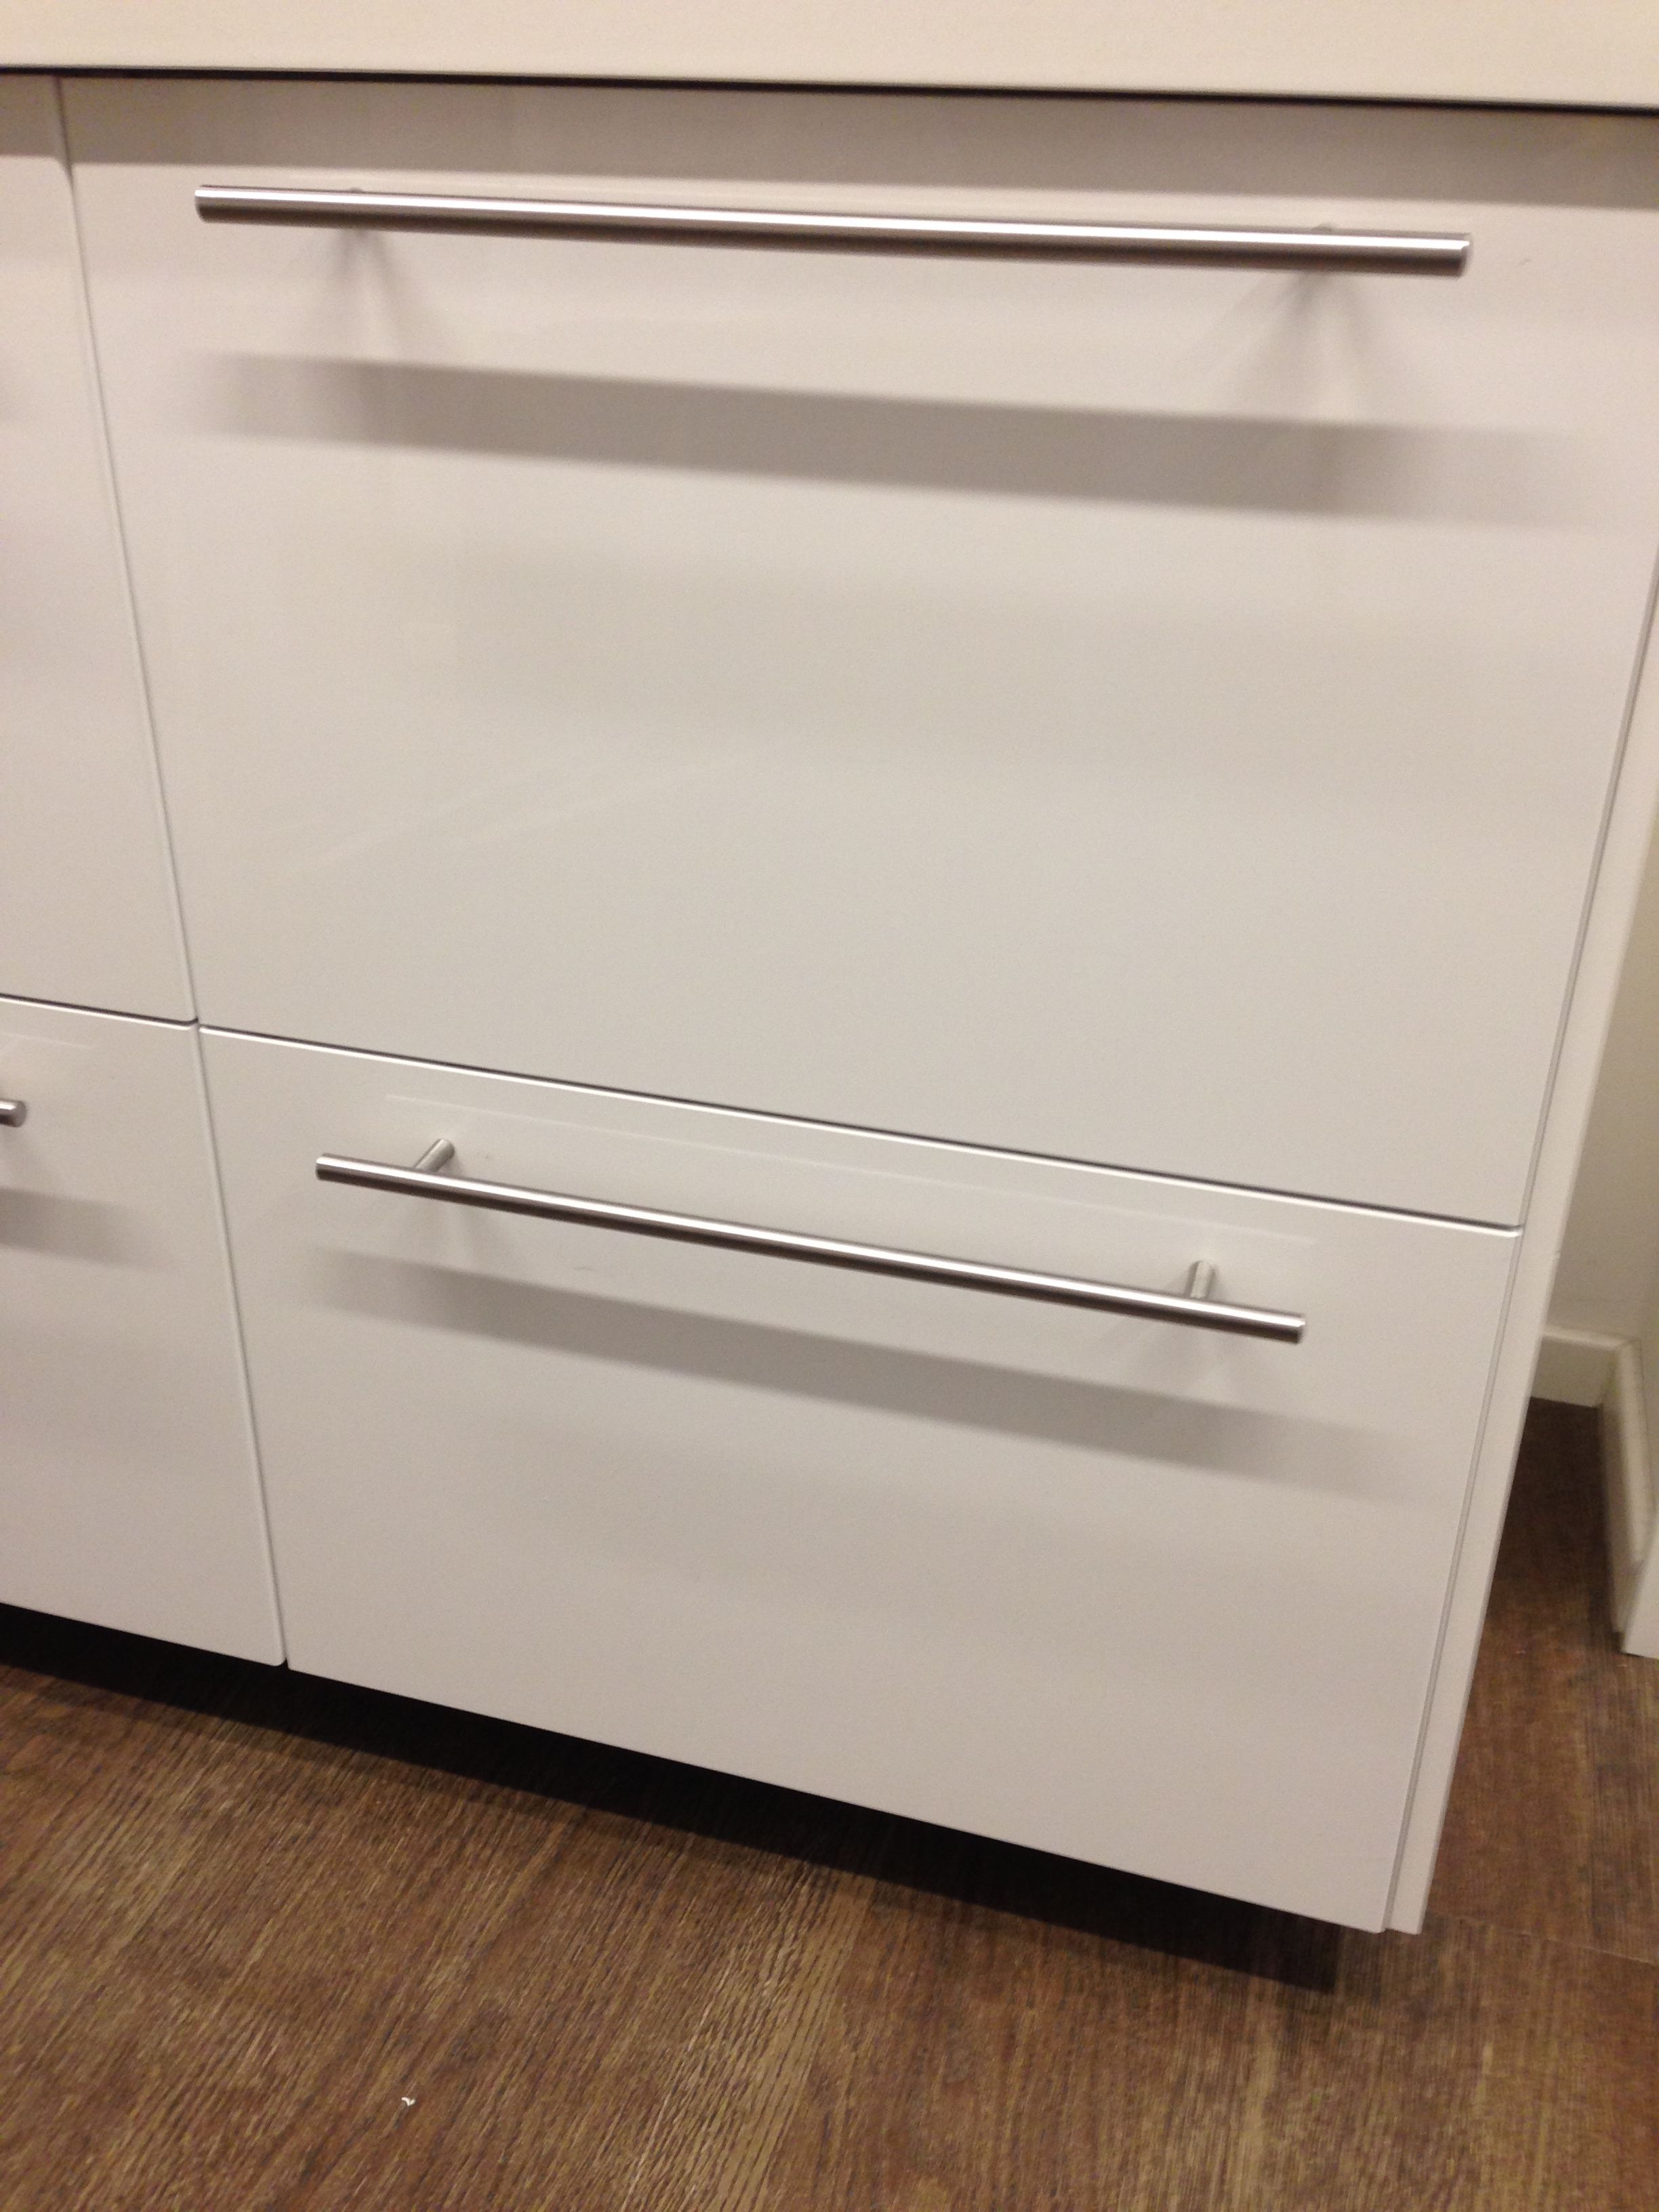 Ringhult Kitchen Cupboard Doors From Ikea In Gloss White With T Bar Handles Kuchnia